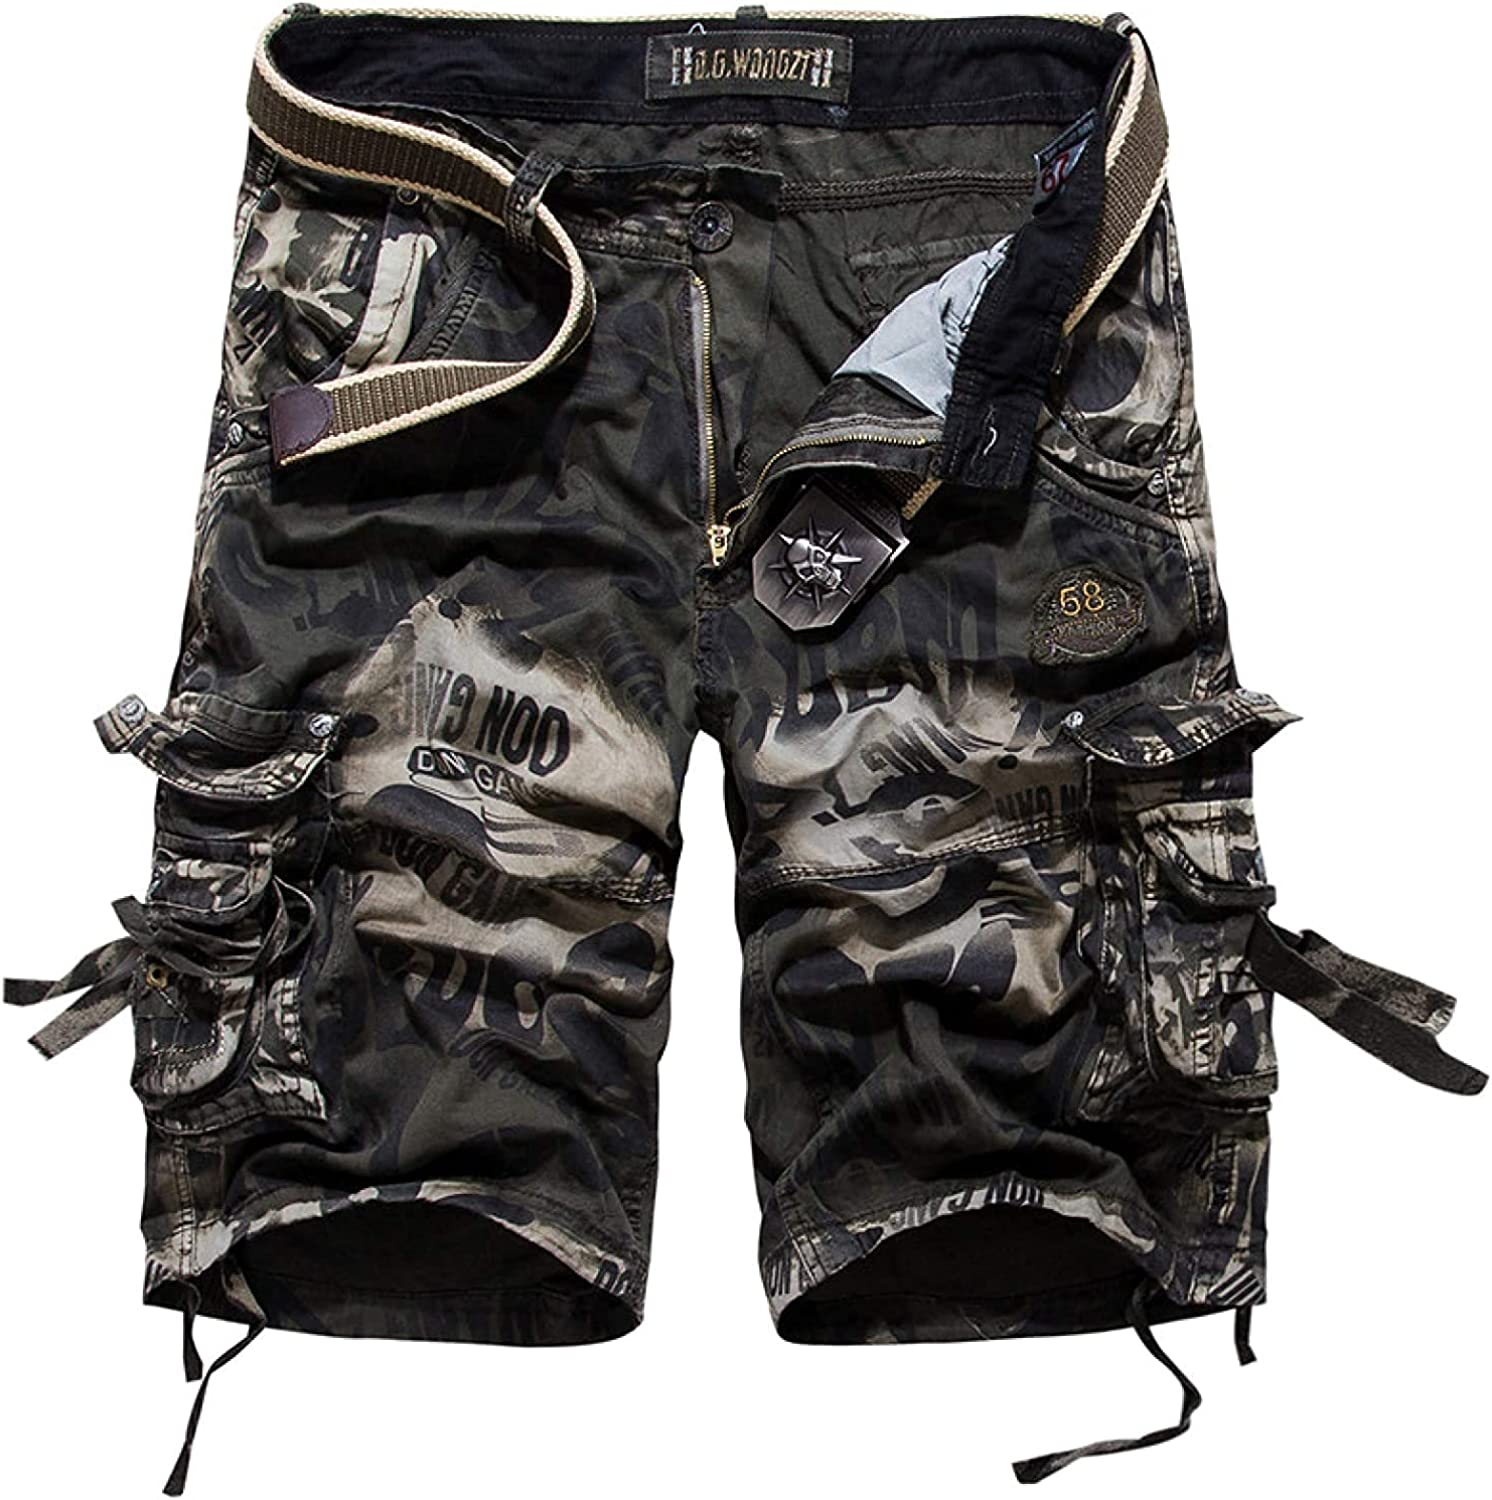 Fllaees Men's Camouflage Cargo Shorts Trend Personality Outdoor Combat Work Streetwear